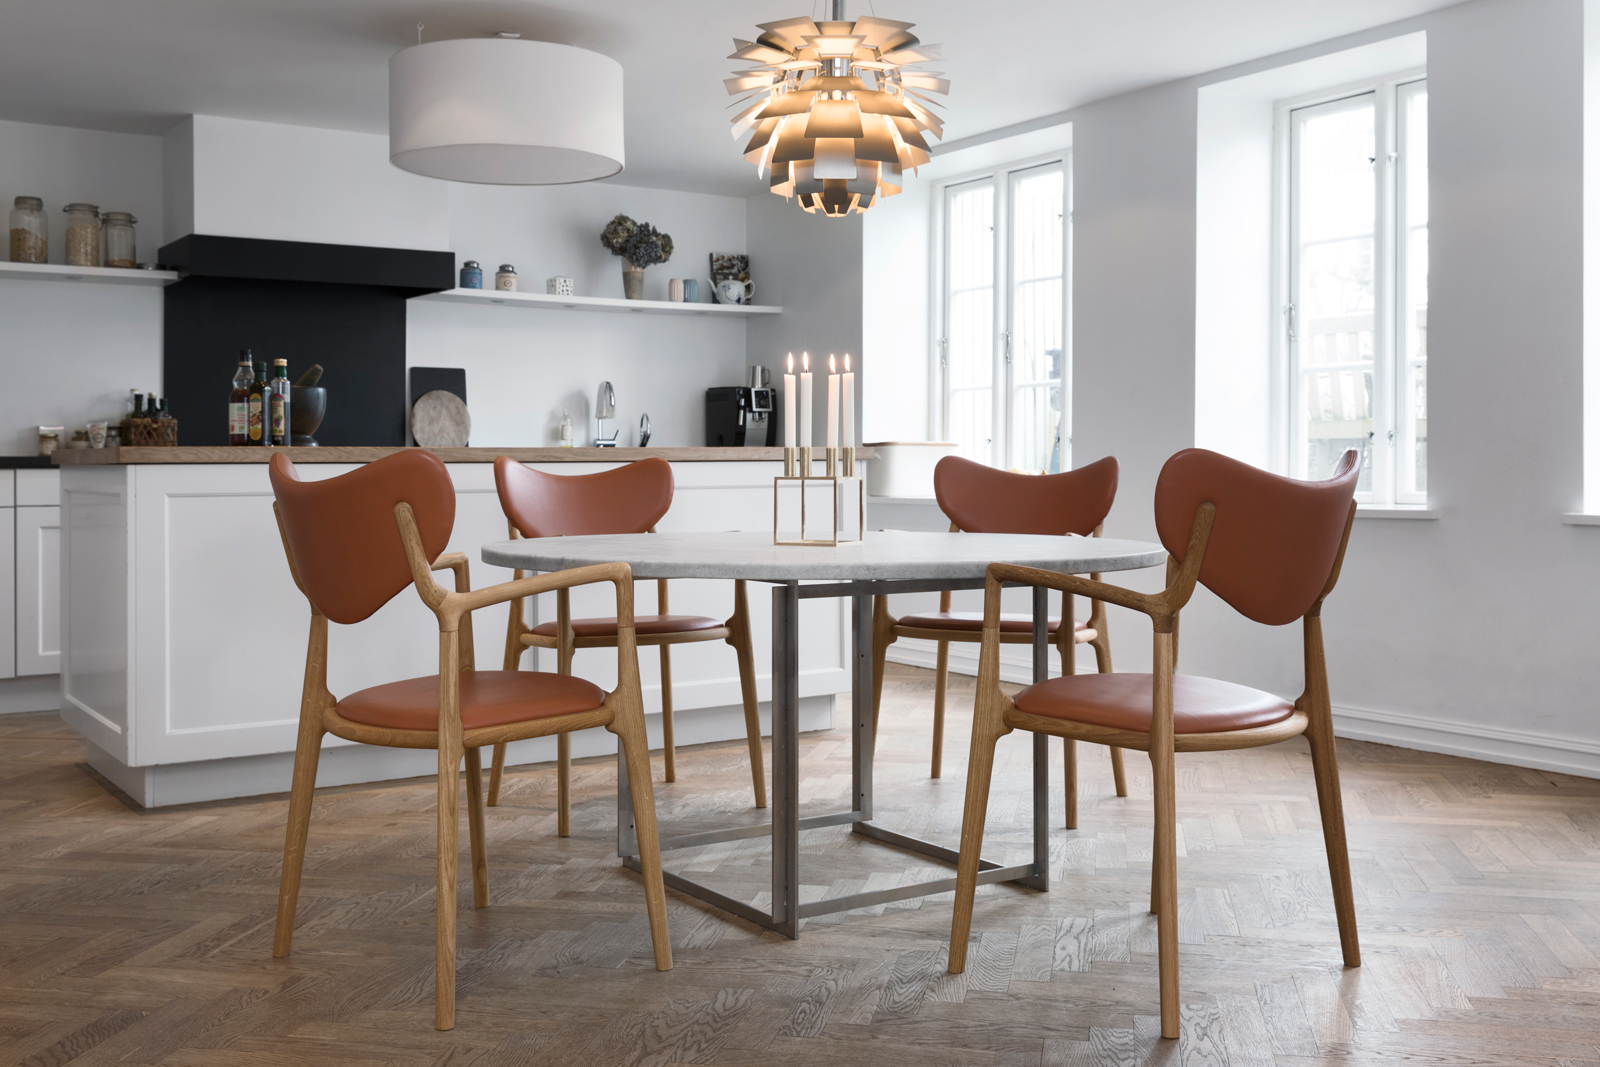 Truenorth-Designs_Salon_-Dining_-Chair_in_kitchen_Design_by_Asger-Soelberg_-04.jpg